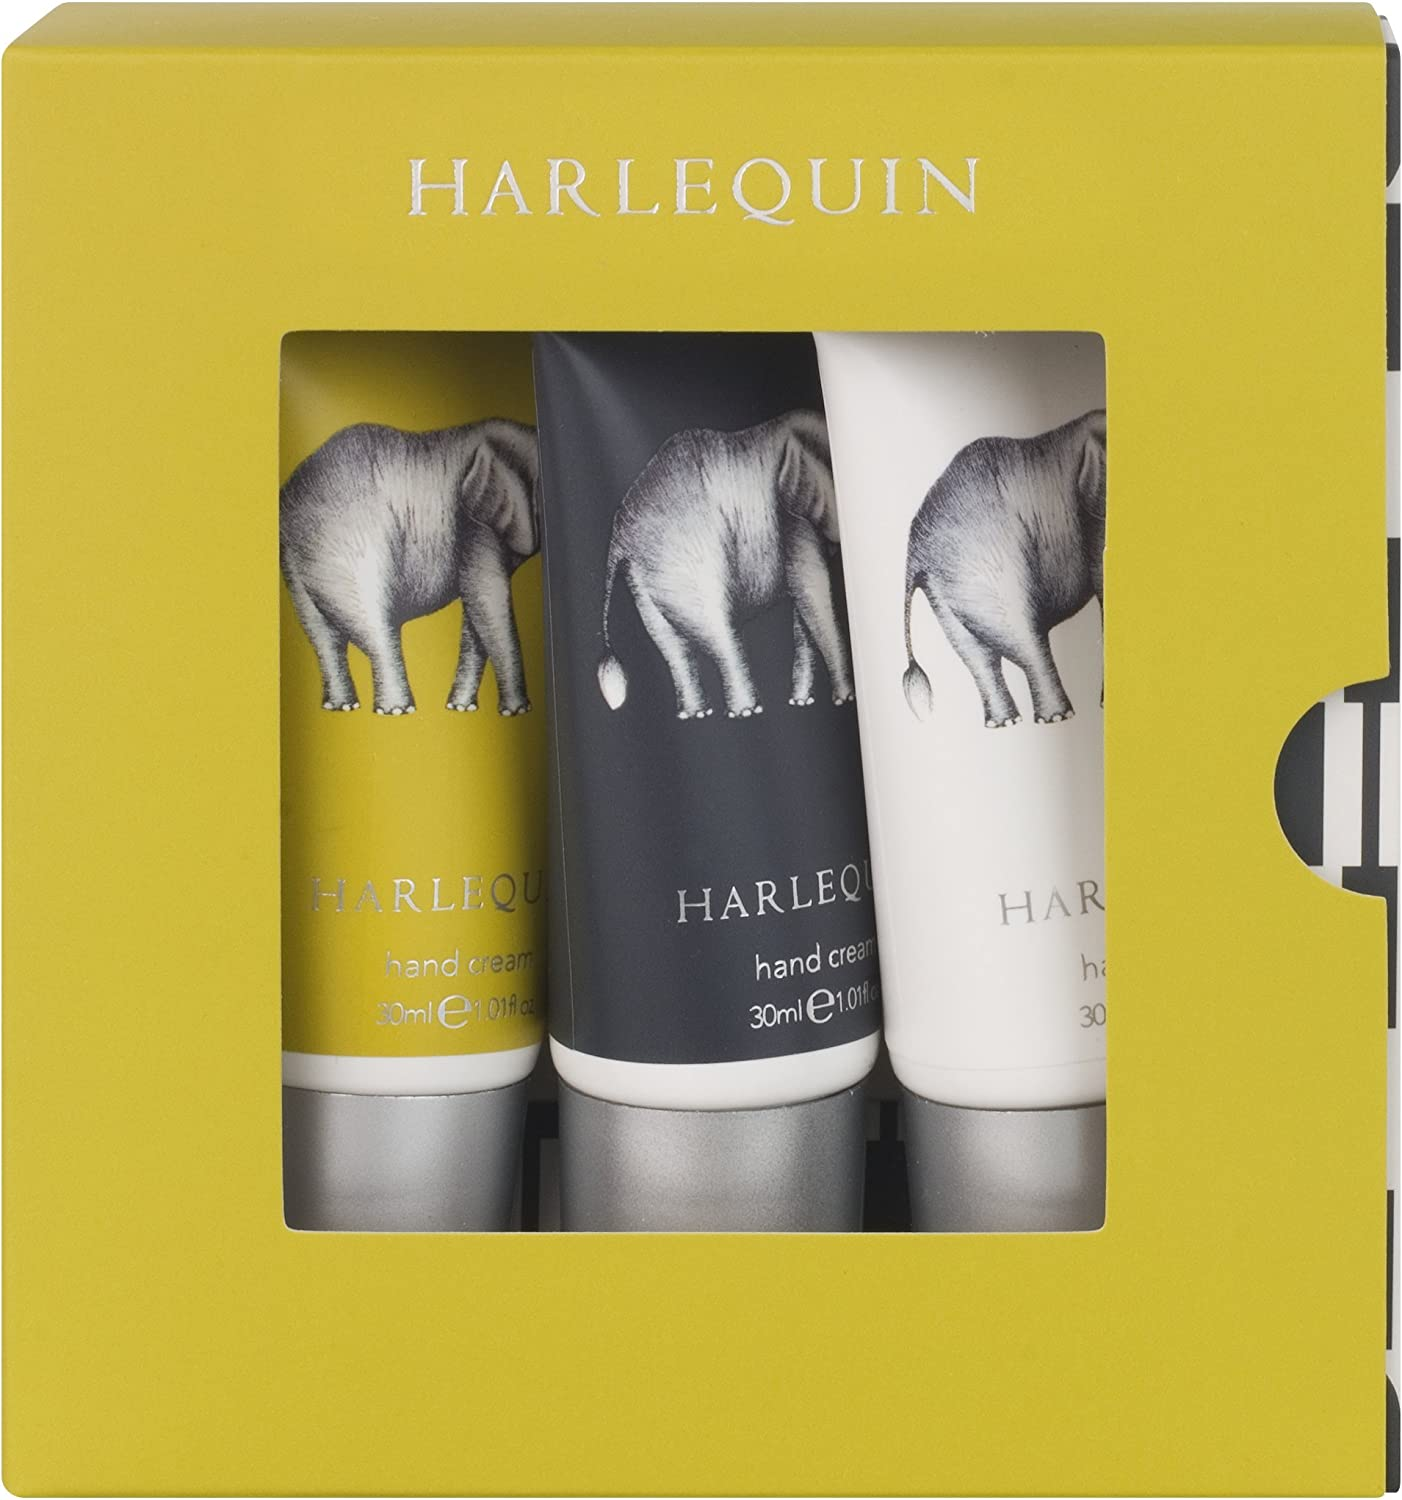 Harlequin Papilio Hand Cream Gift Set by Heathcote & Ivory